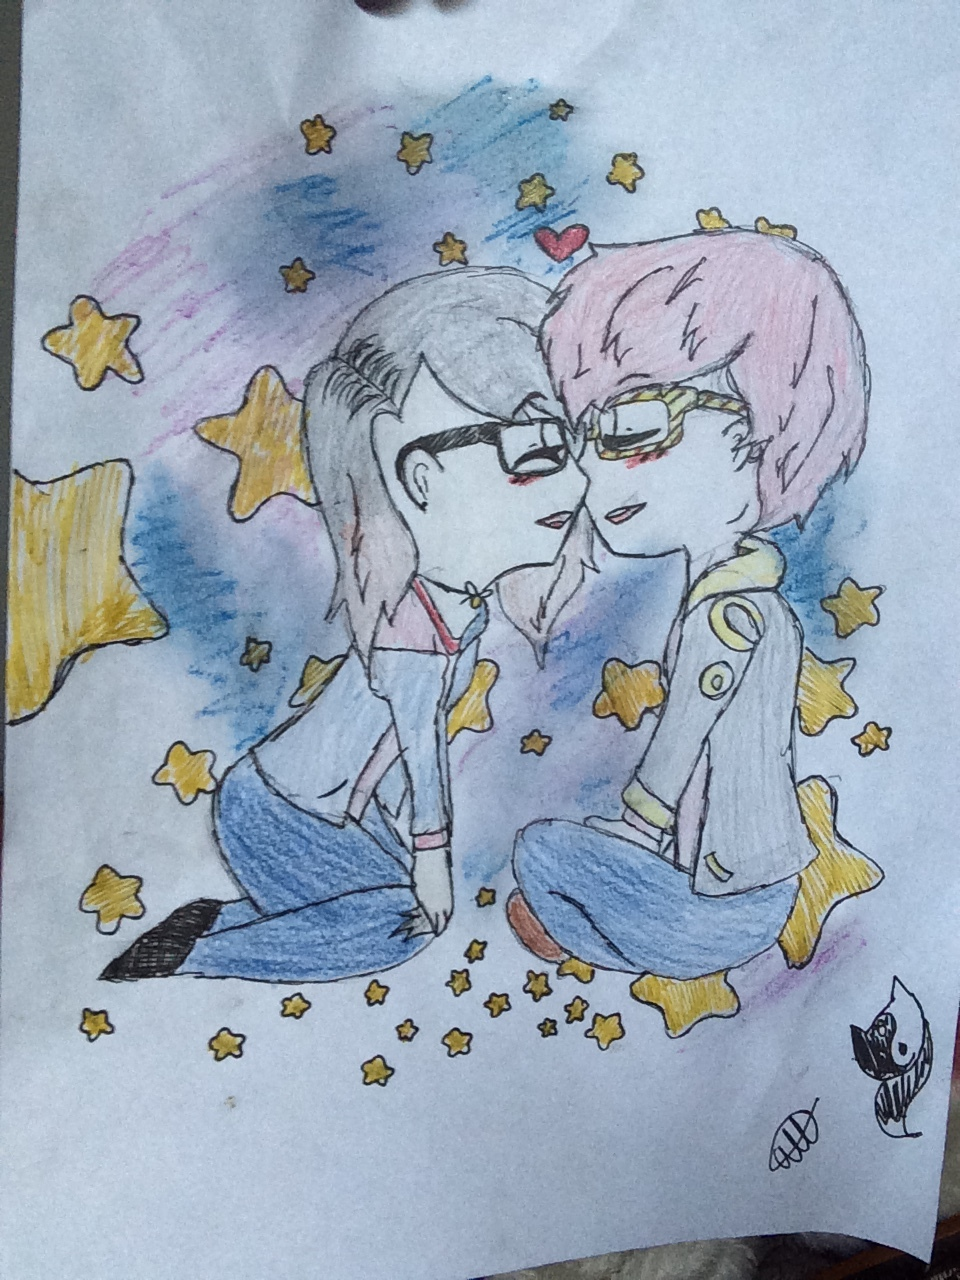 707 and Me by StarZCandy03